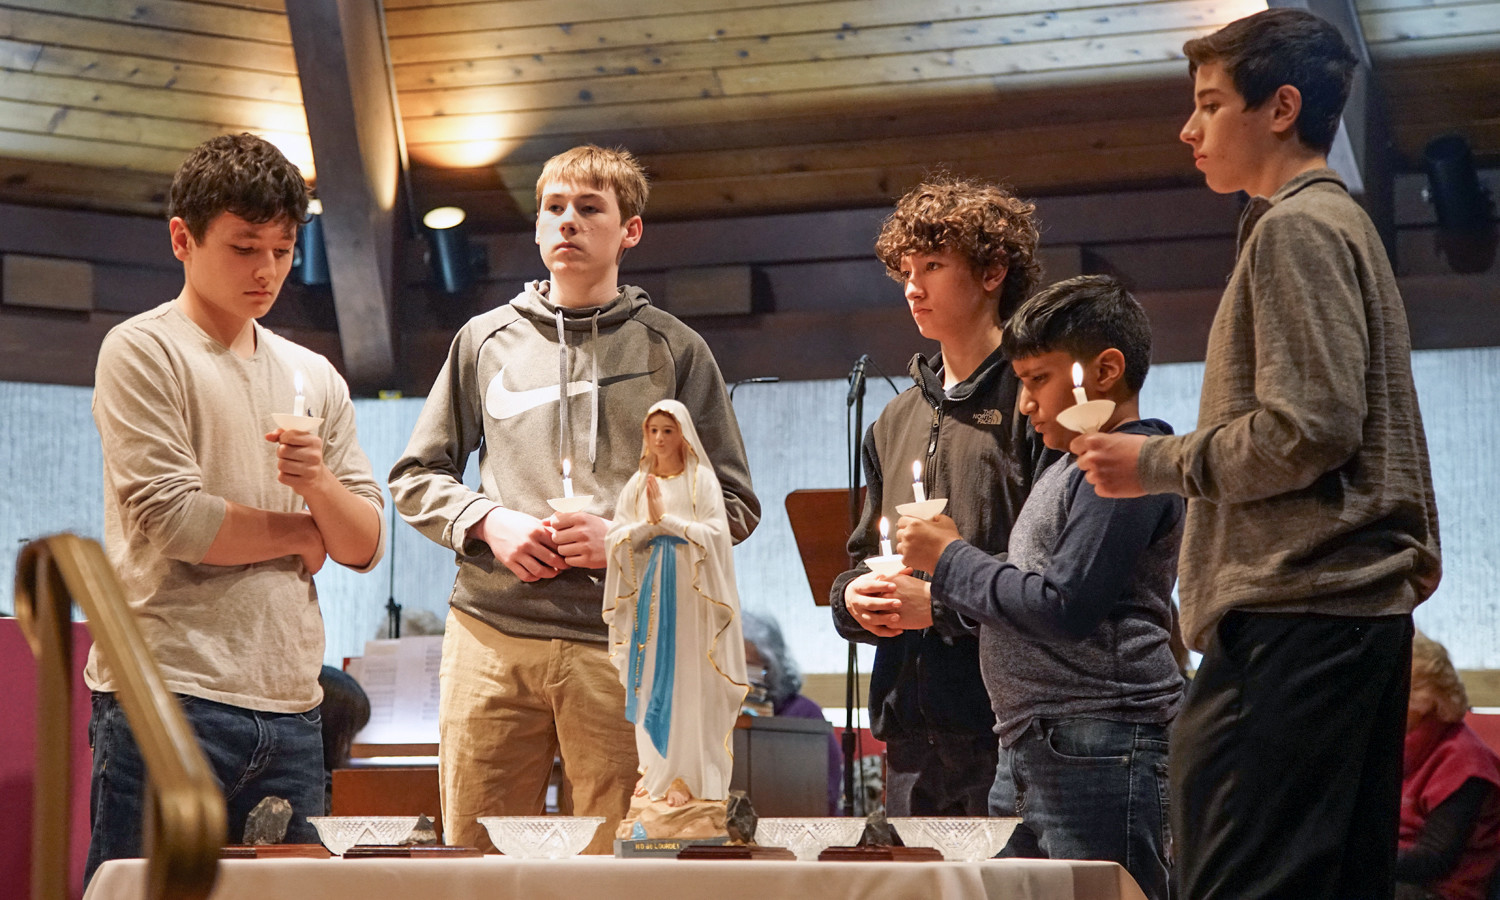 Youths surround statue of Our Lady during the Rosary by Candlelight. From left, they are Adam Dingman, James Dingman, Brendan Mackin, Abel Abraham and Tyler Nicholson.